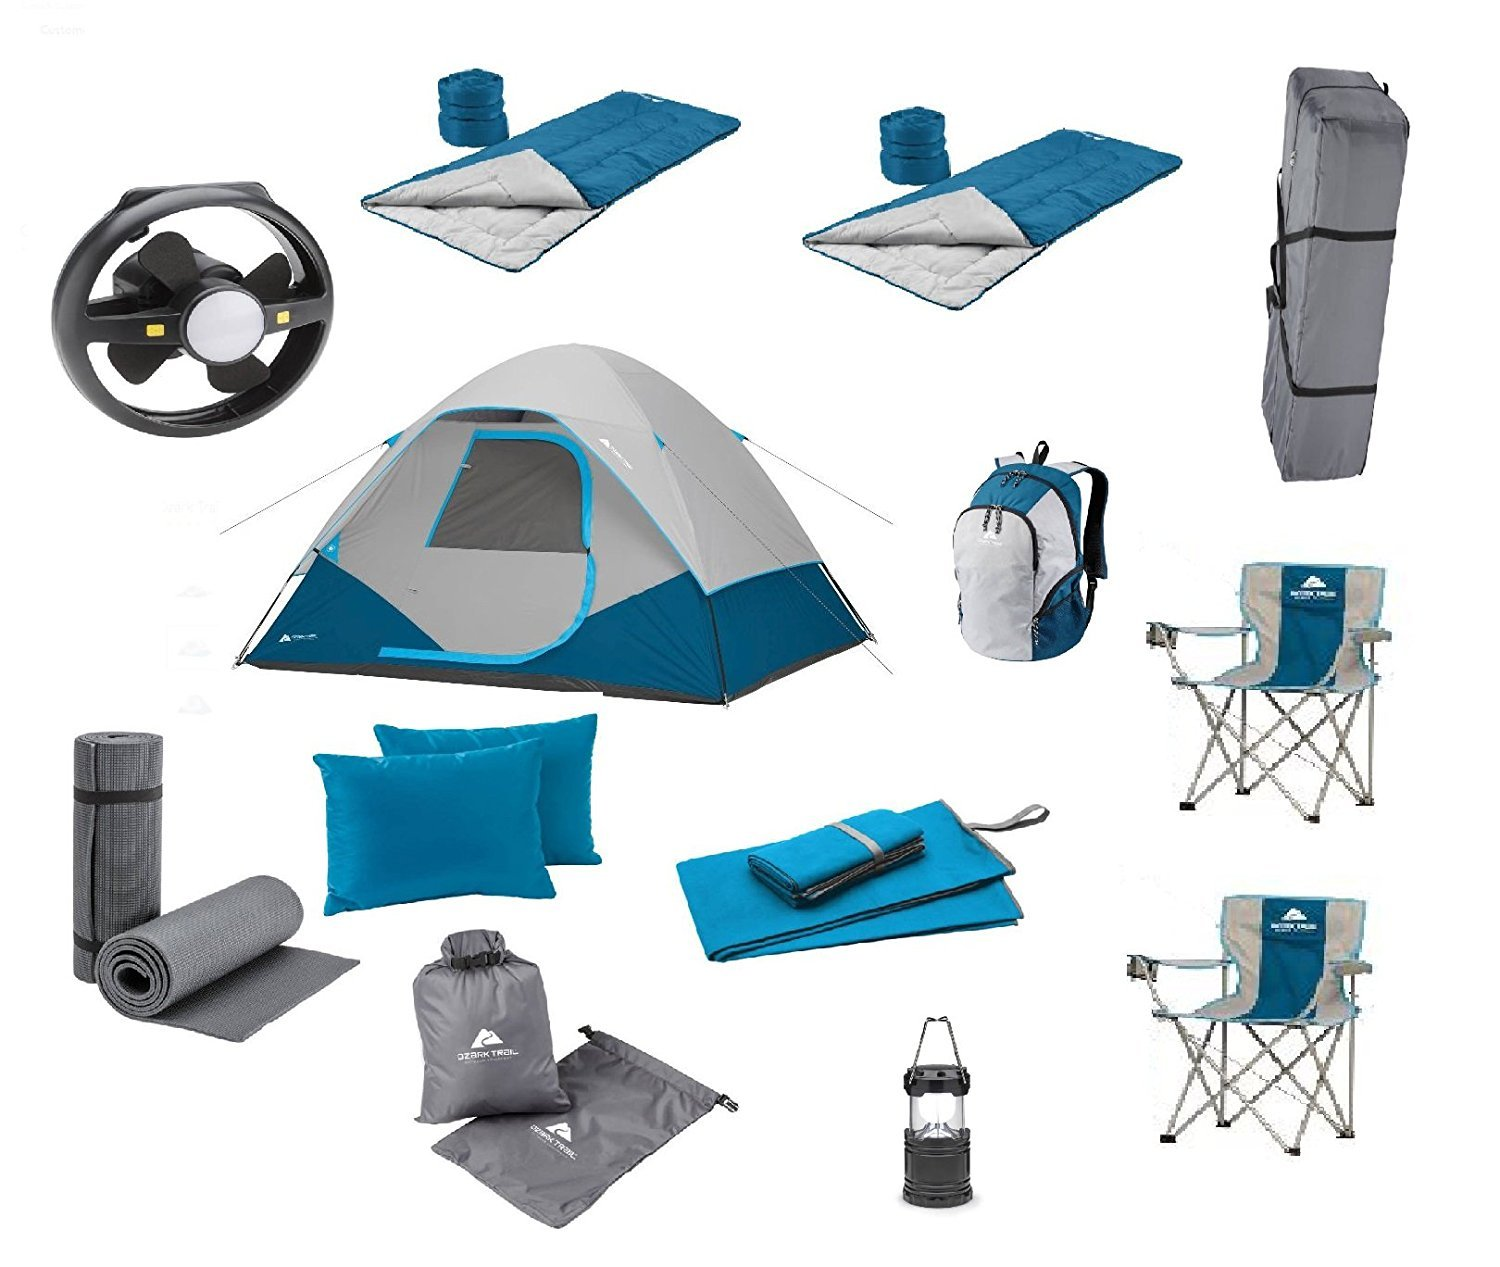 good-Camping-Equipment-Family-Cabin-Tent-Sleeping-Bag-Chairs-Hiking-Gear-included